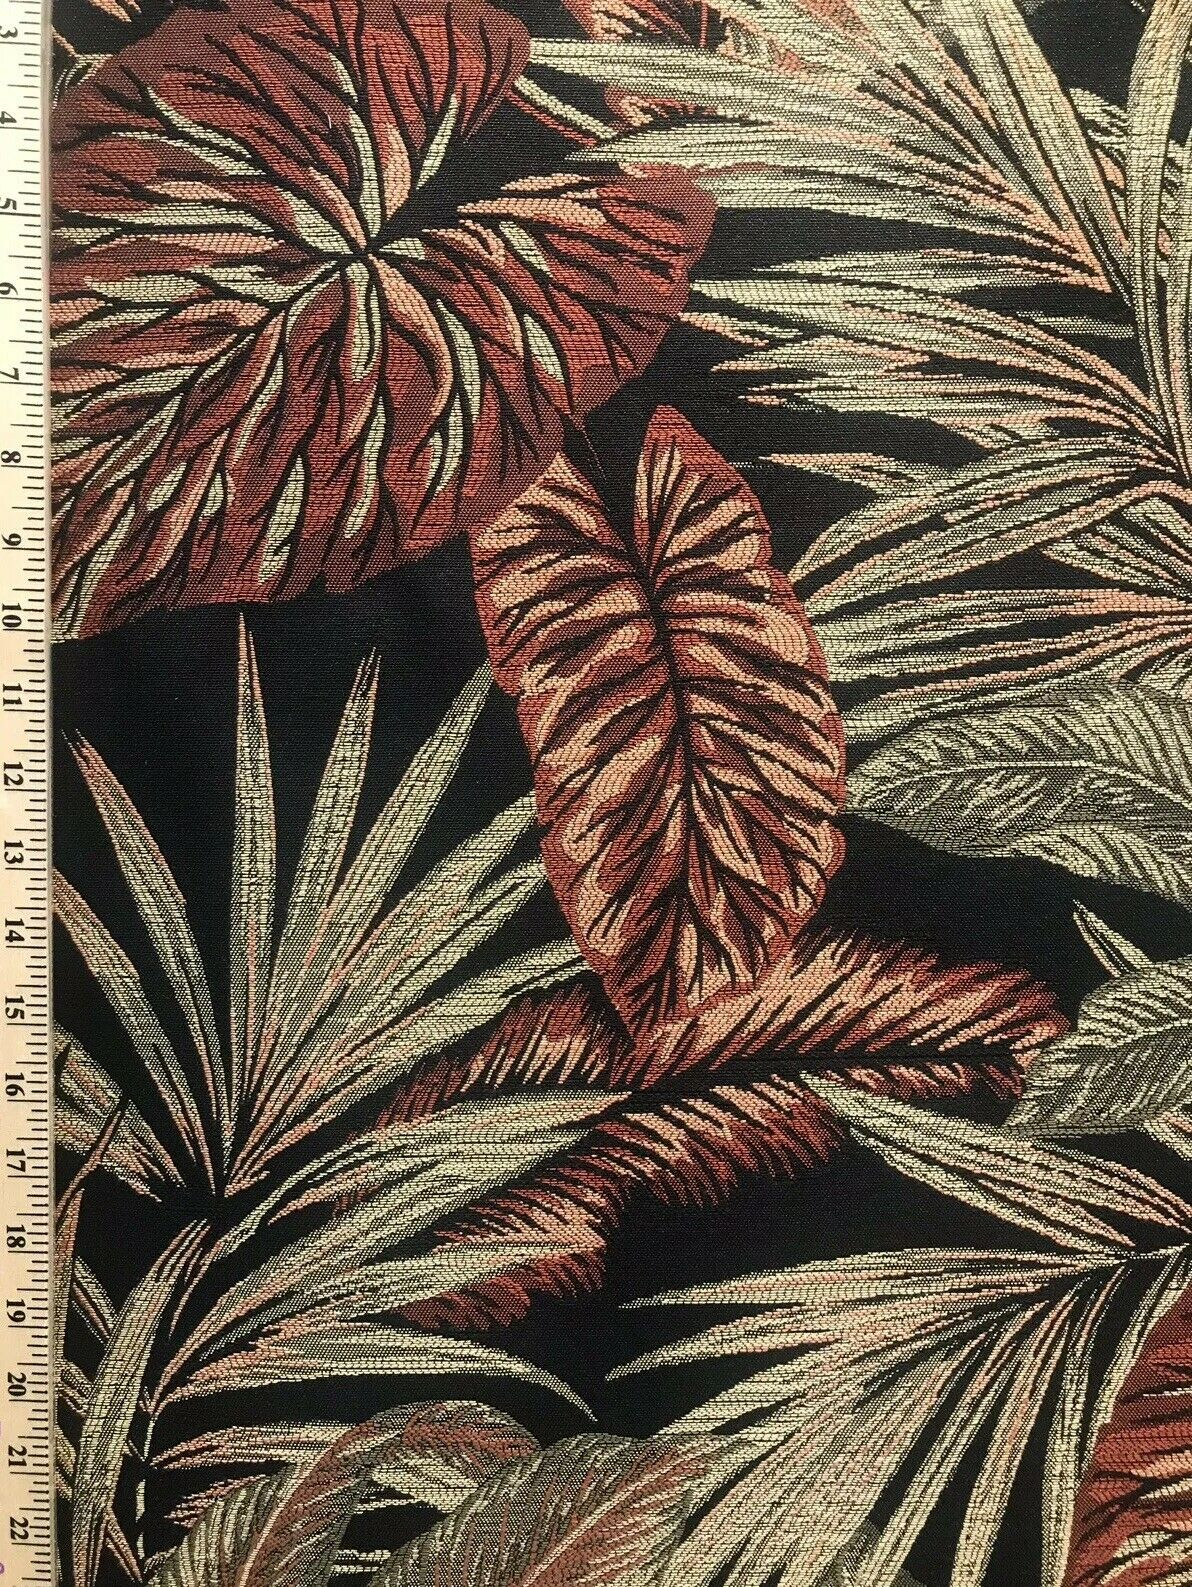 BACK IN STOCK! Designer Brocade Upholstery Fabric- Palm Leaves Floral Black